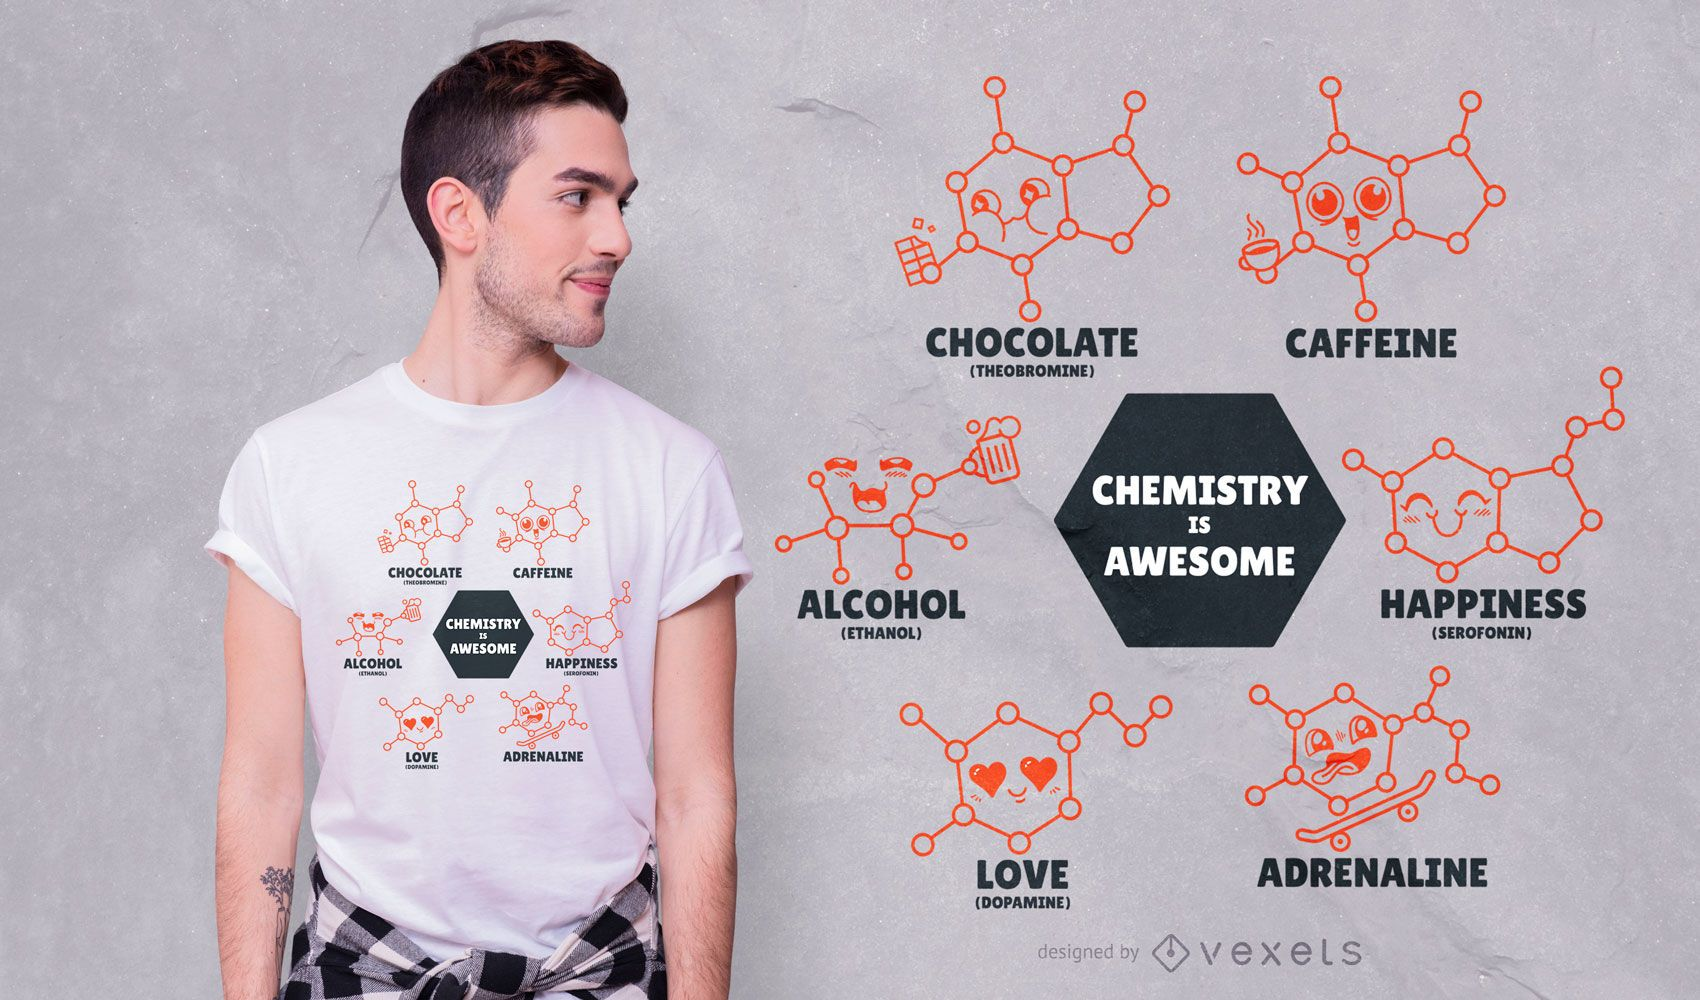 Chemistry is awesome t-shirt design